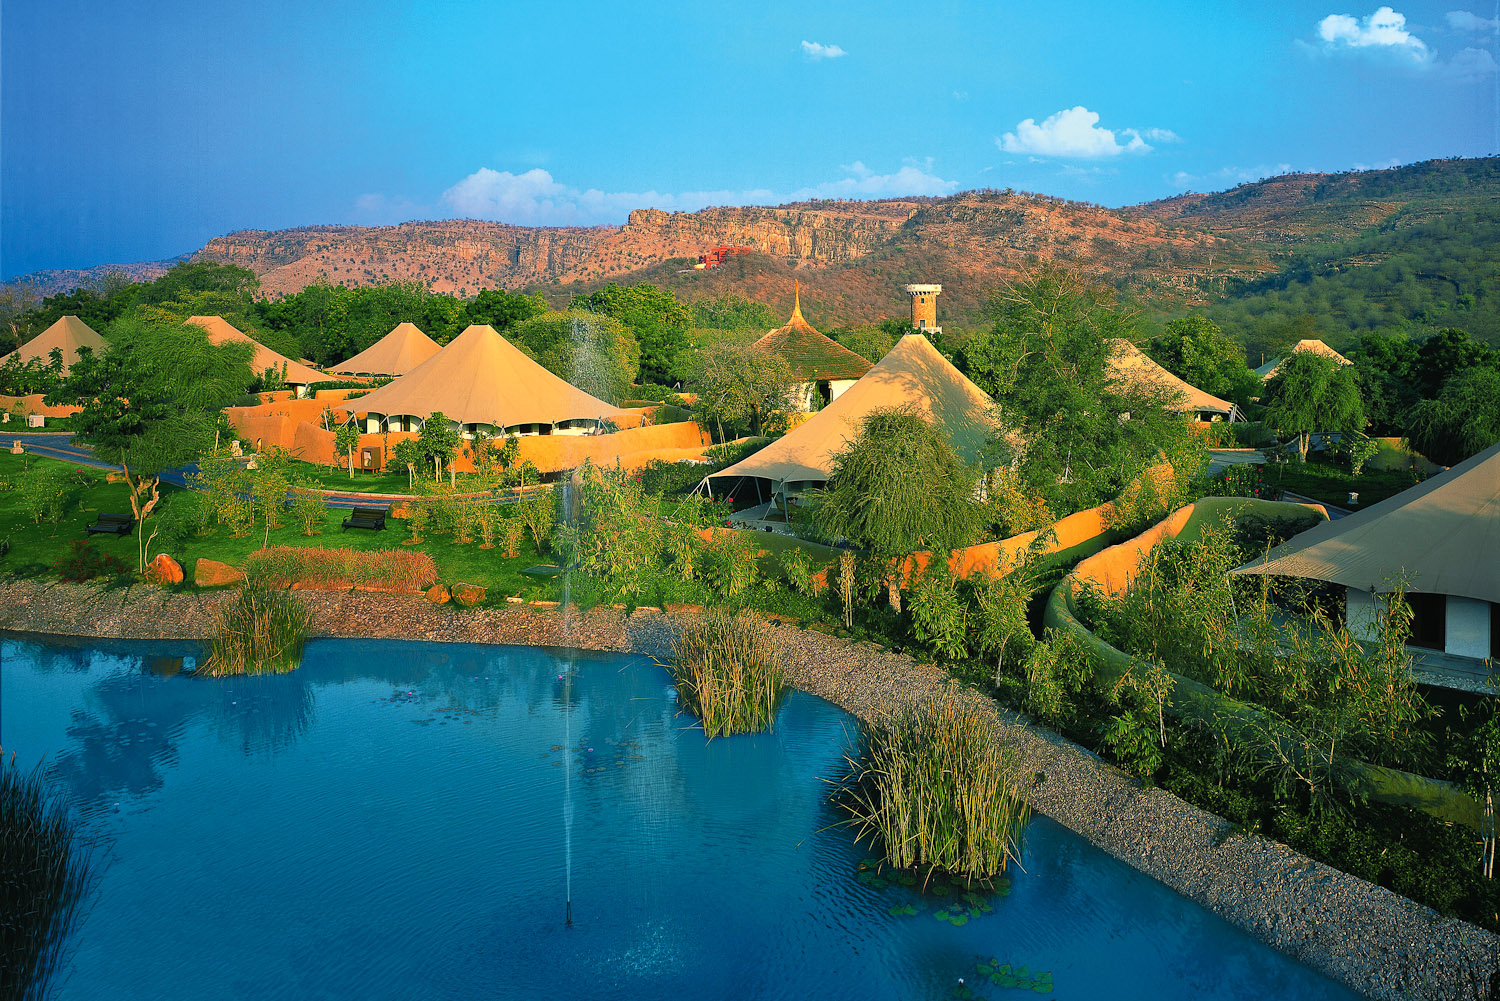 Oberoi Vanyavilas in Ranthambore, India.